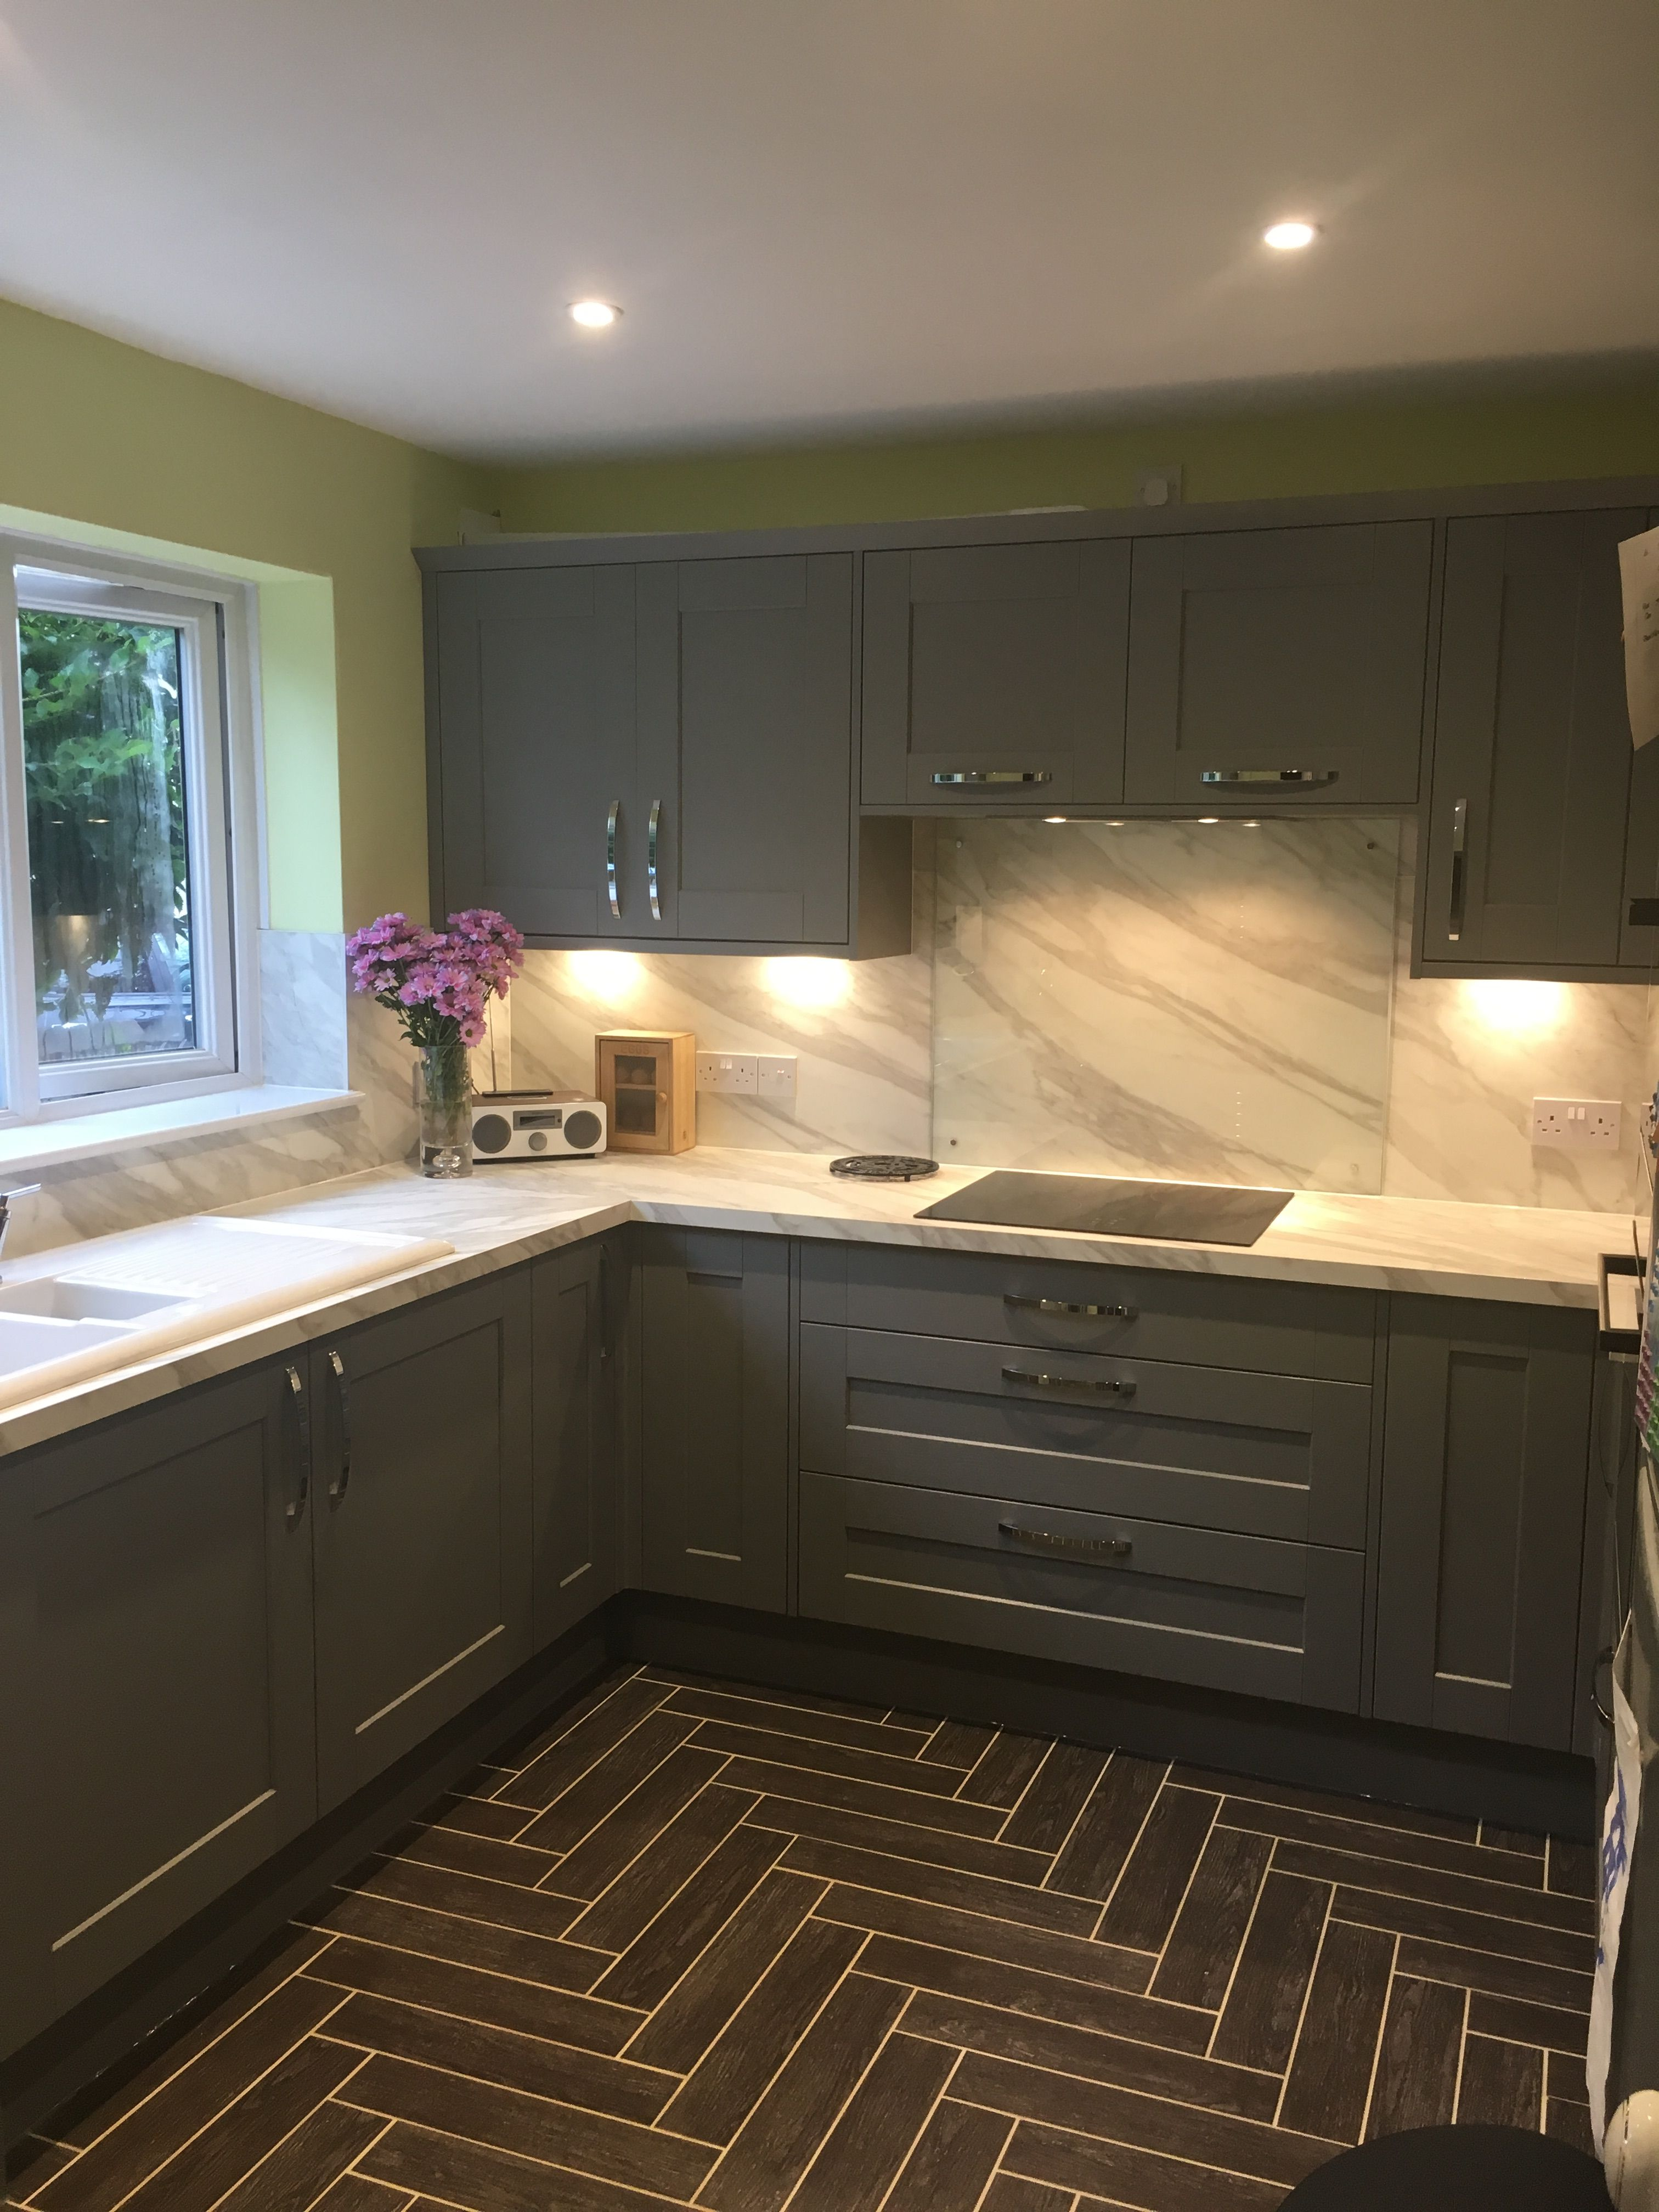 Howdens kitchen Fairford grey with white marble effect